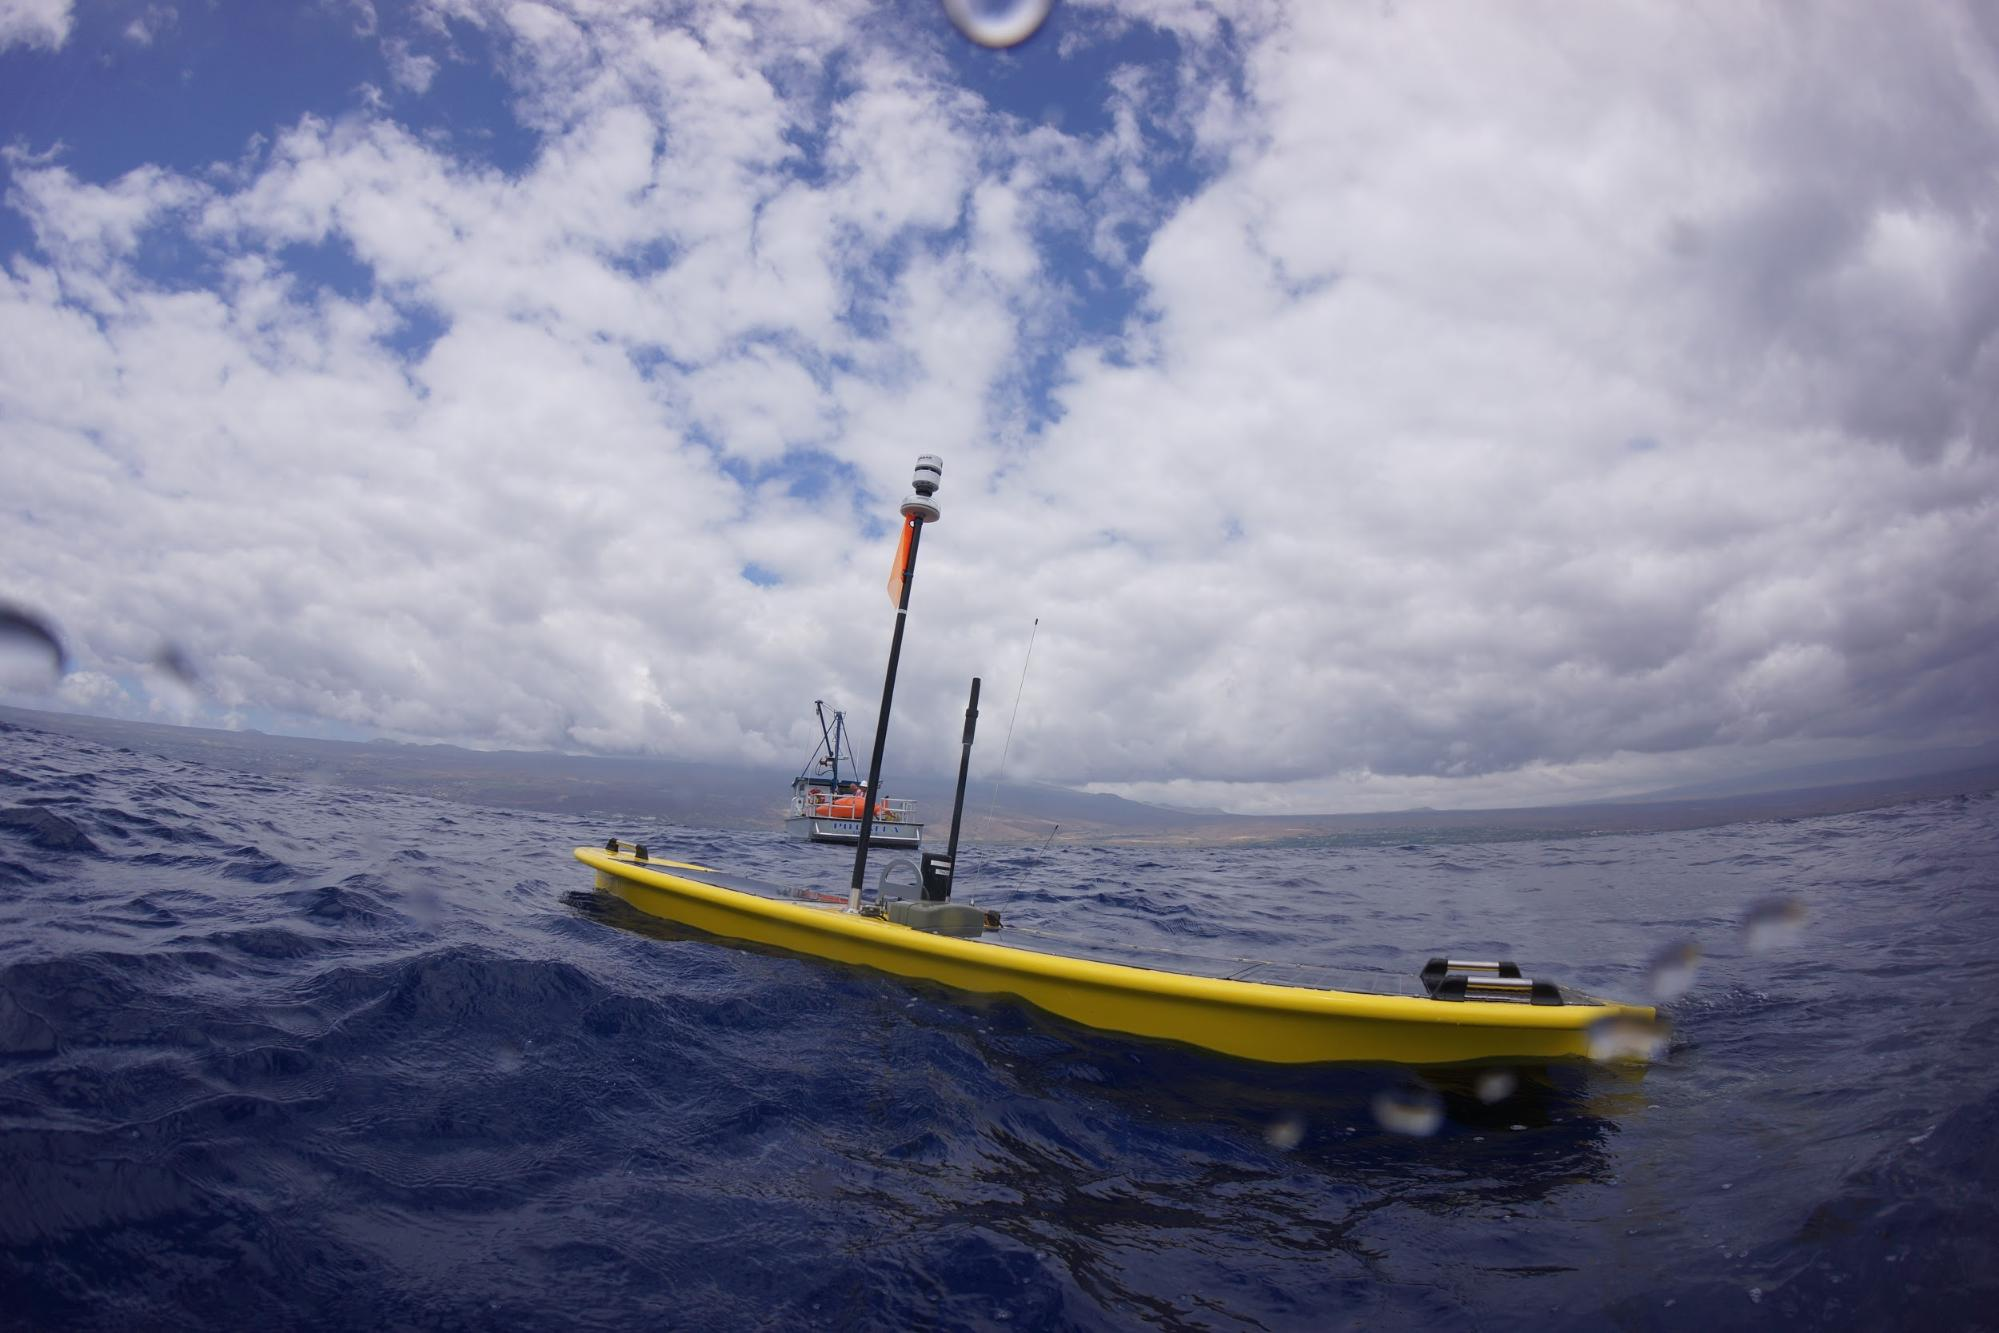 Figure 1. The regenerative wave- and solar-powered Wave Glider by Liquid Robotics is capable of traversing oceans autonomously with Jetson on board for low-power vision and AI processing.